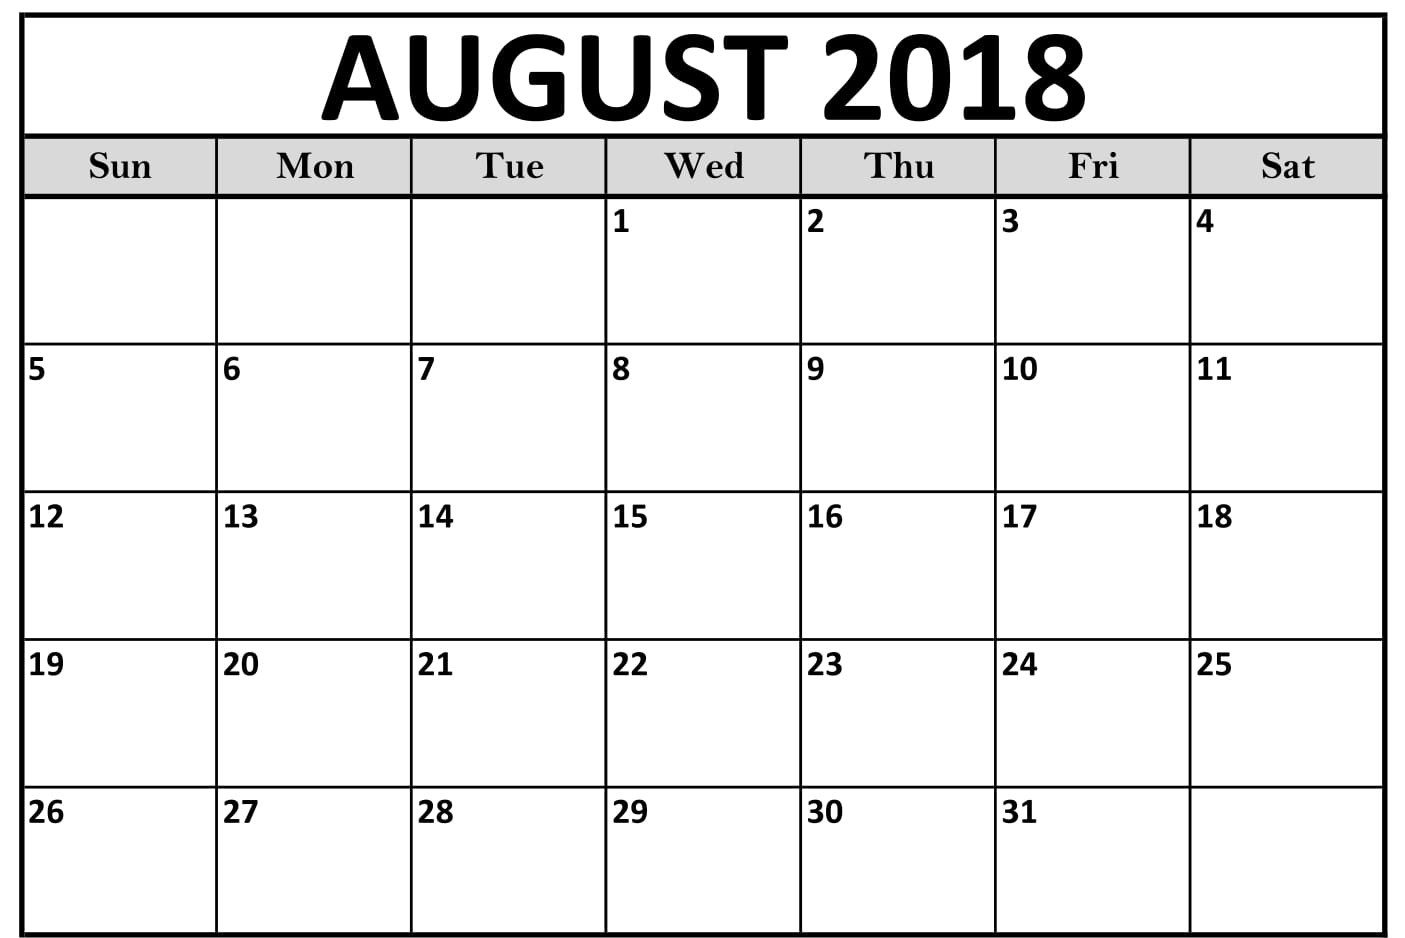 free printable calendar august 2018 Agust Month Printable Calendars 2018 erdferdf